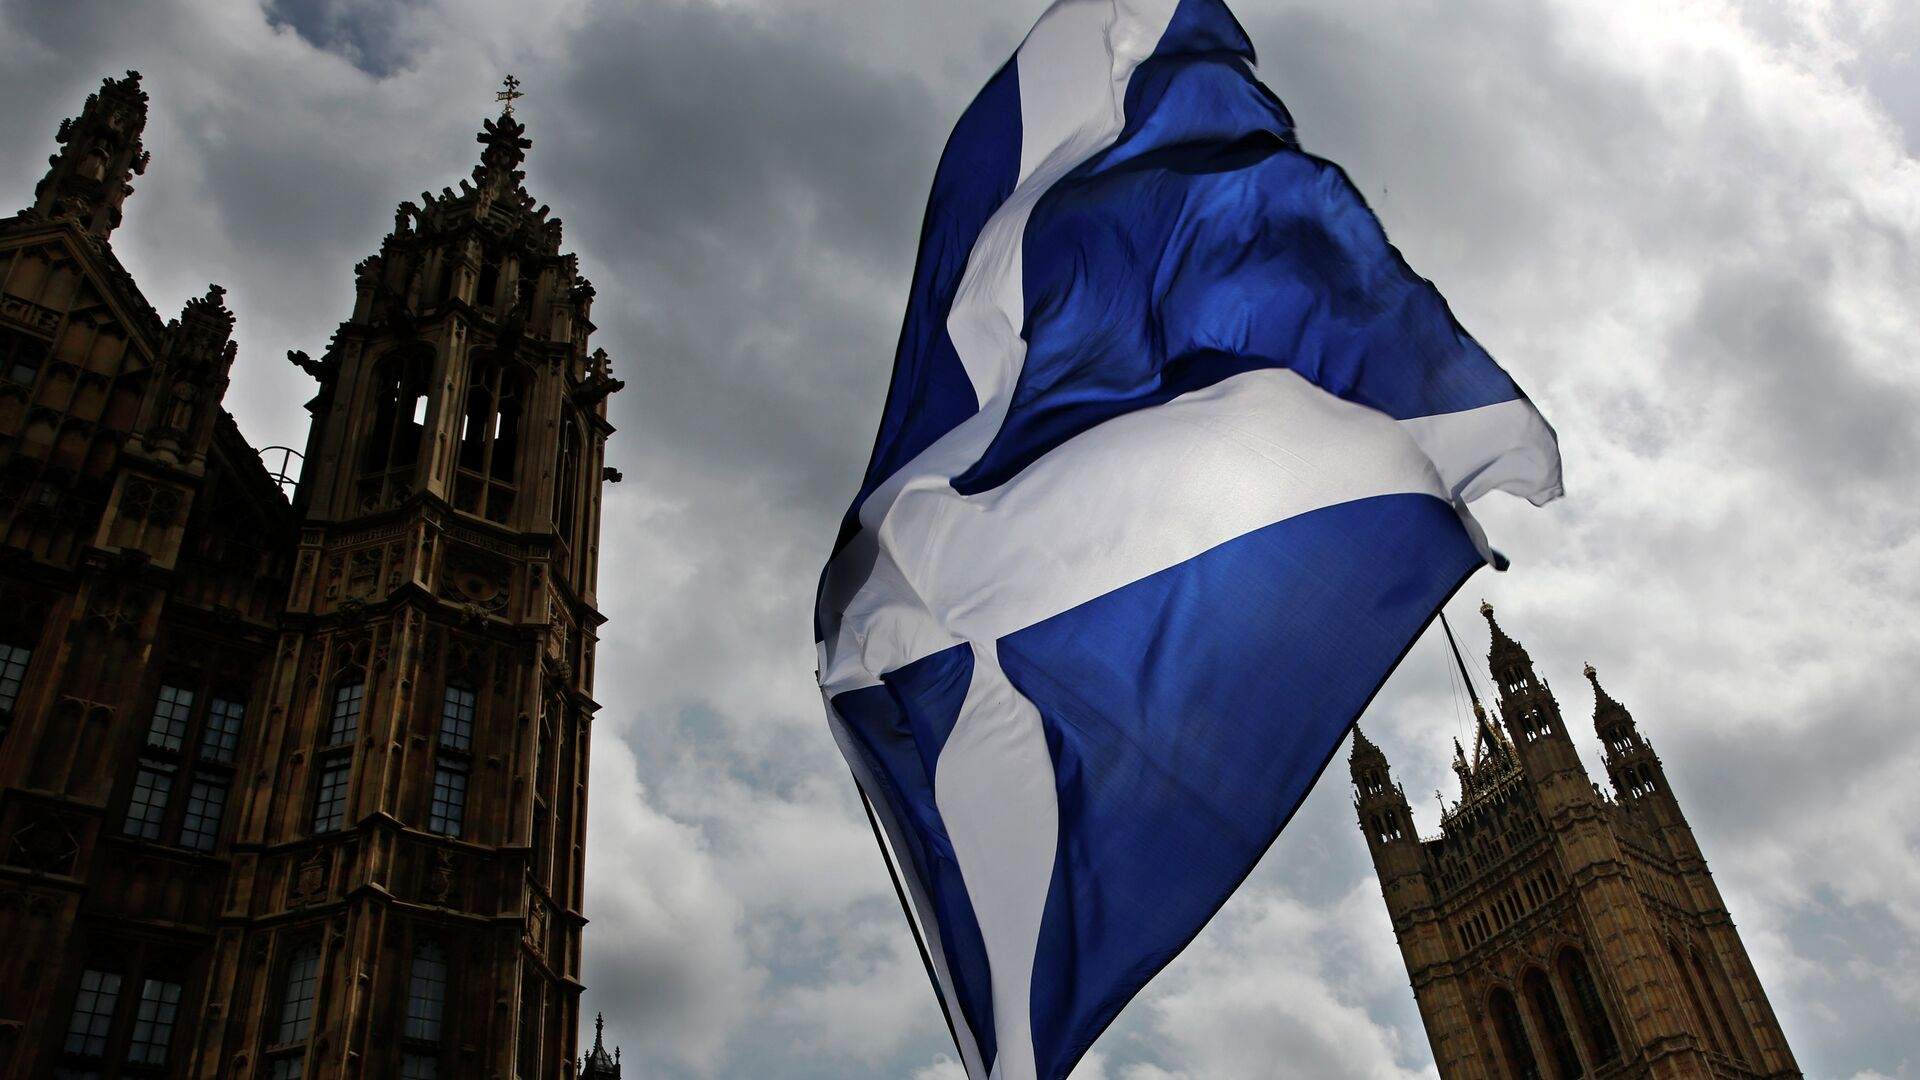 A member of public flies a giant Scottish Saltire flag outside the Houses of Parliament shortly before Scotland First Minister Nicola Sturgeon posed with newly-elected Scottish National Party (SNP) MPs during a photocall in London on May 11, 2015 - Sputnik Mundo, 1920, 22.03.2021